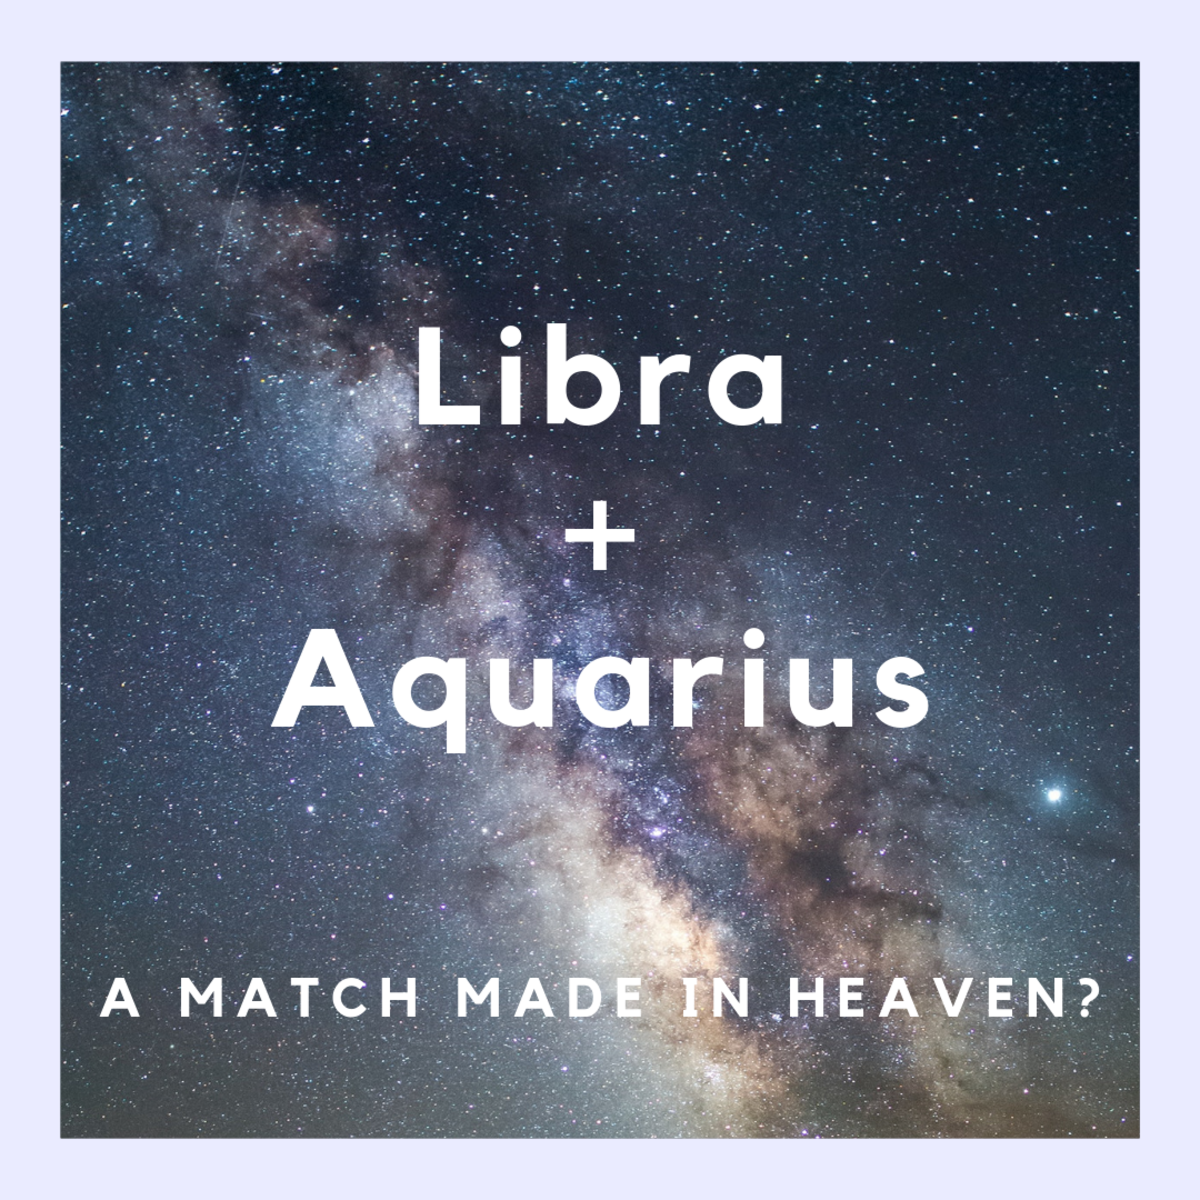 Why Aquarius and Libra Fall Hard for Each Other (And Stay Together)